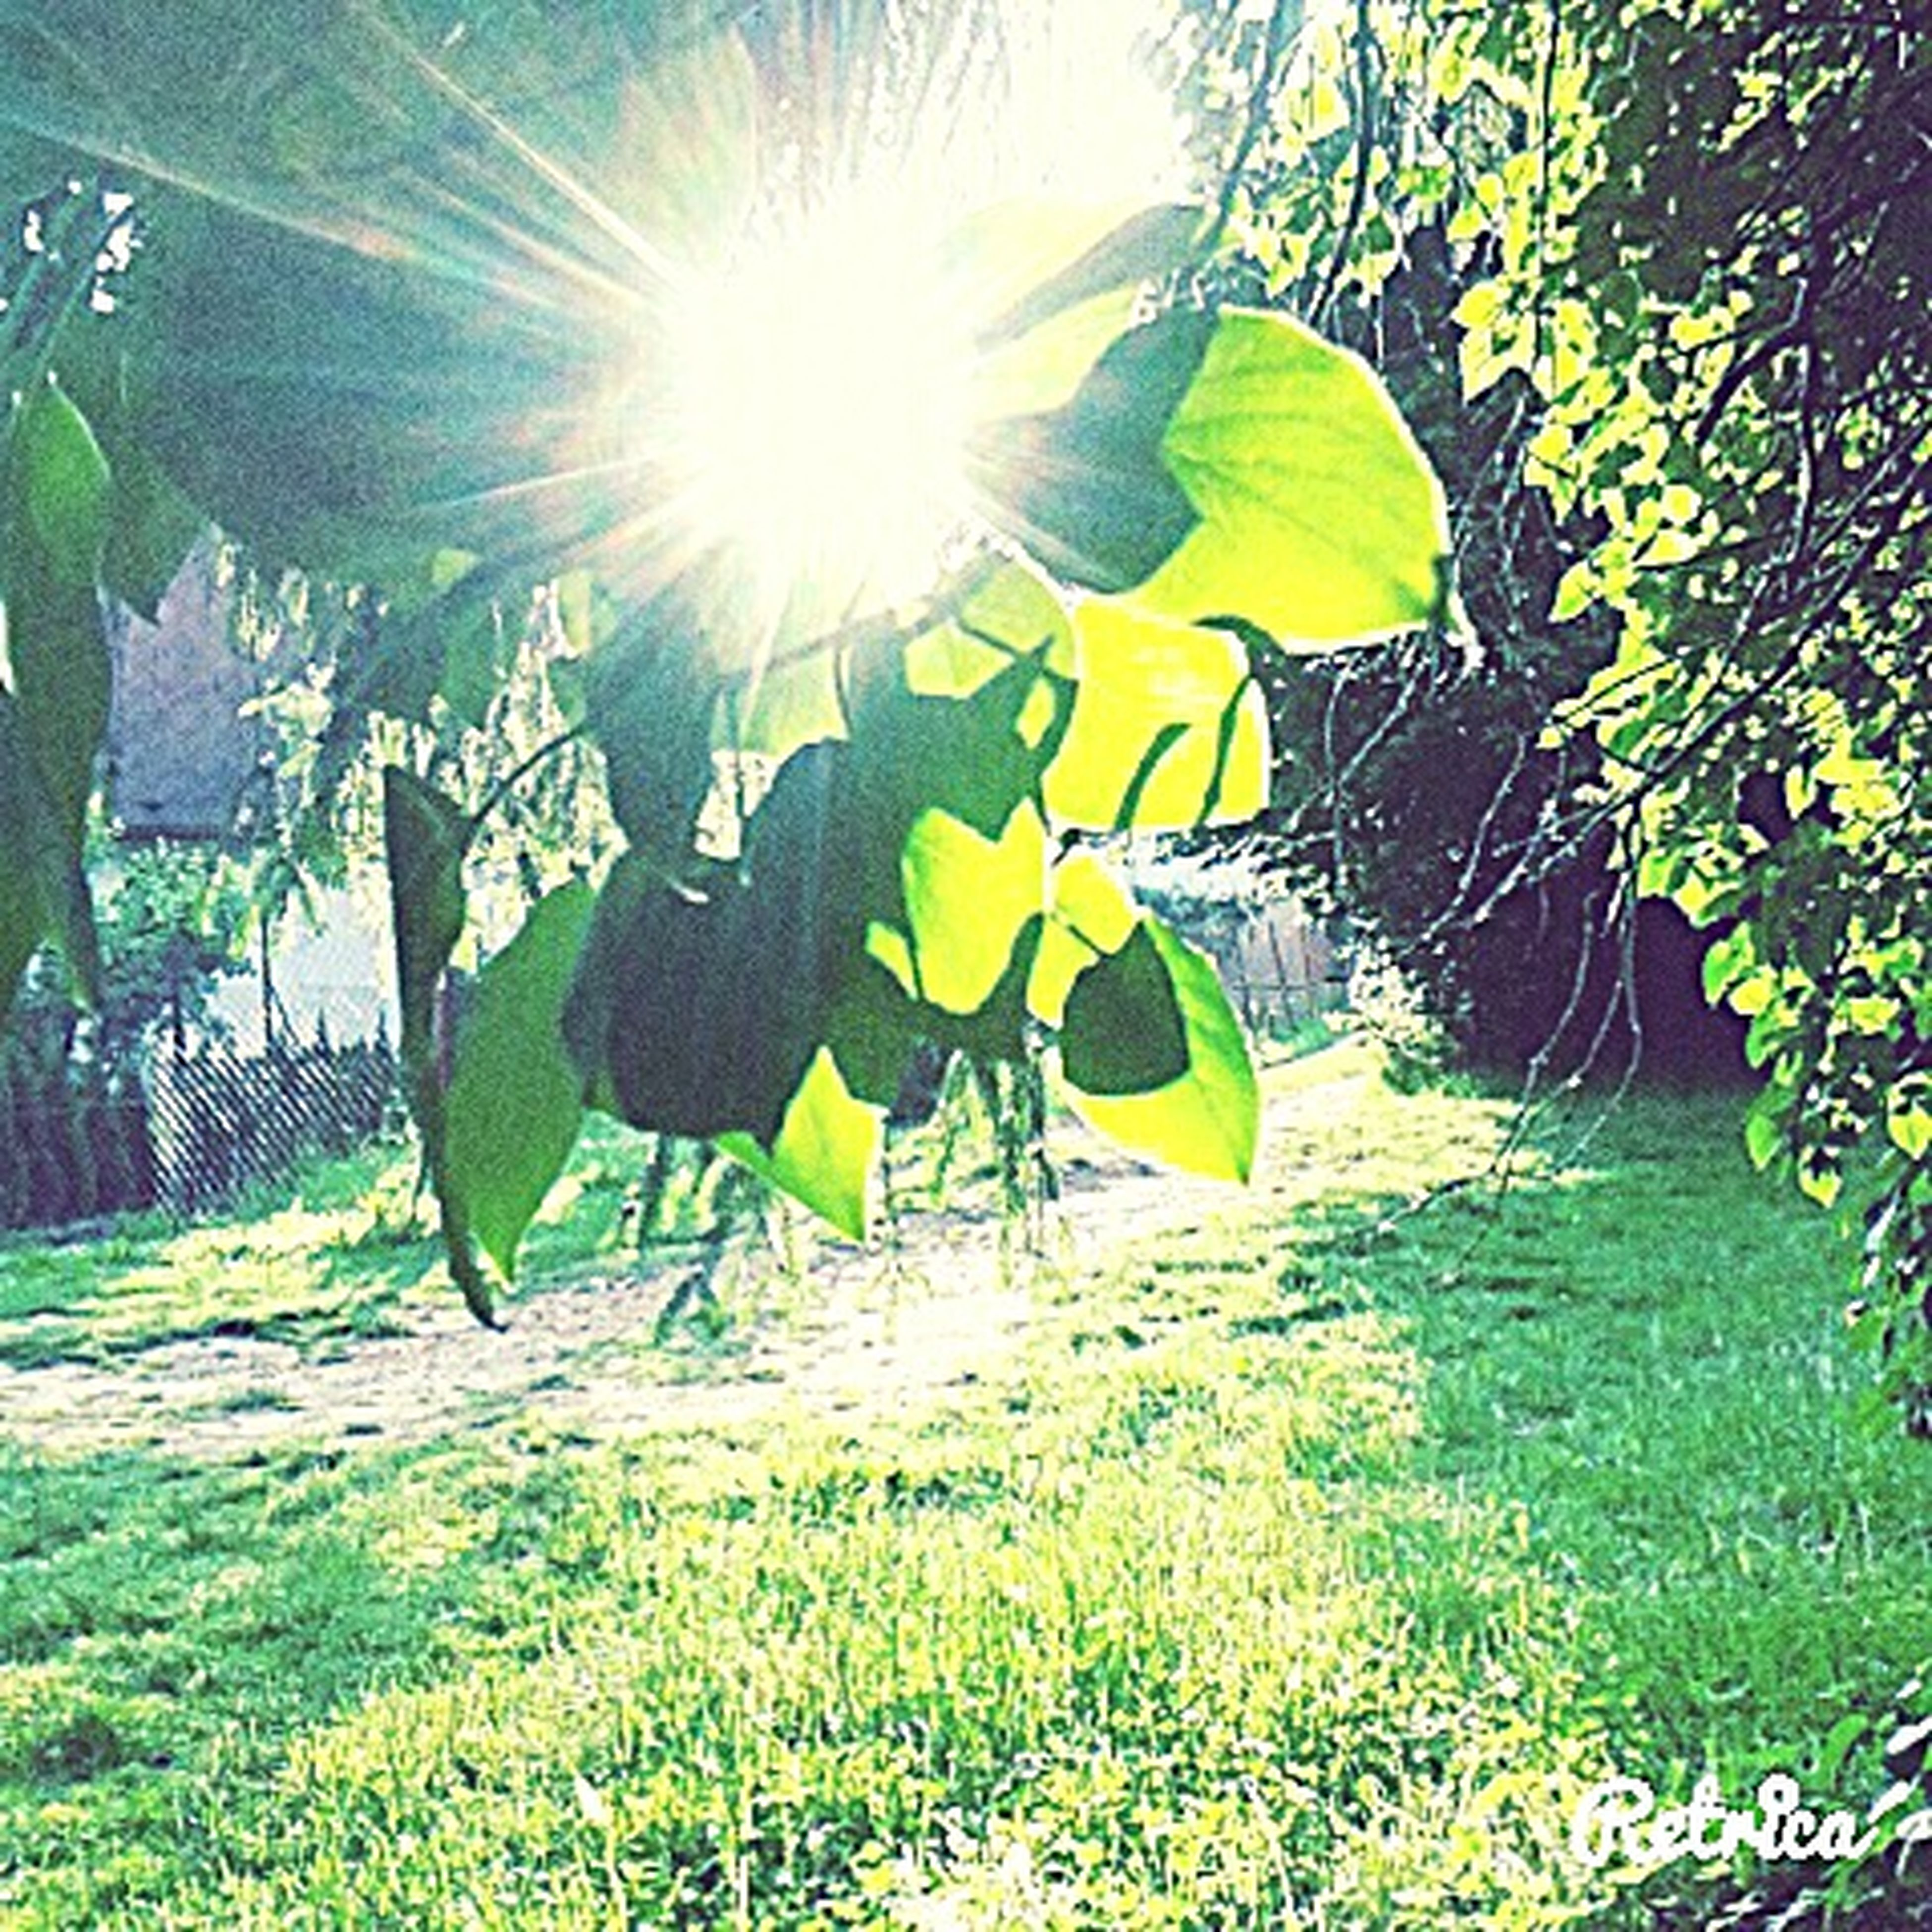 sunlight, sun, sunbeam, lens flare, green color, grass, field, sunny, nature, tree, growth, low angle view, day, tranquility, sky, plant, outdoors, beauty in nature, landscape, leaf